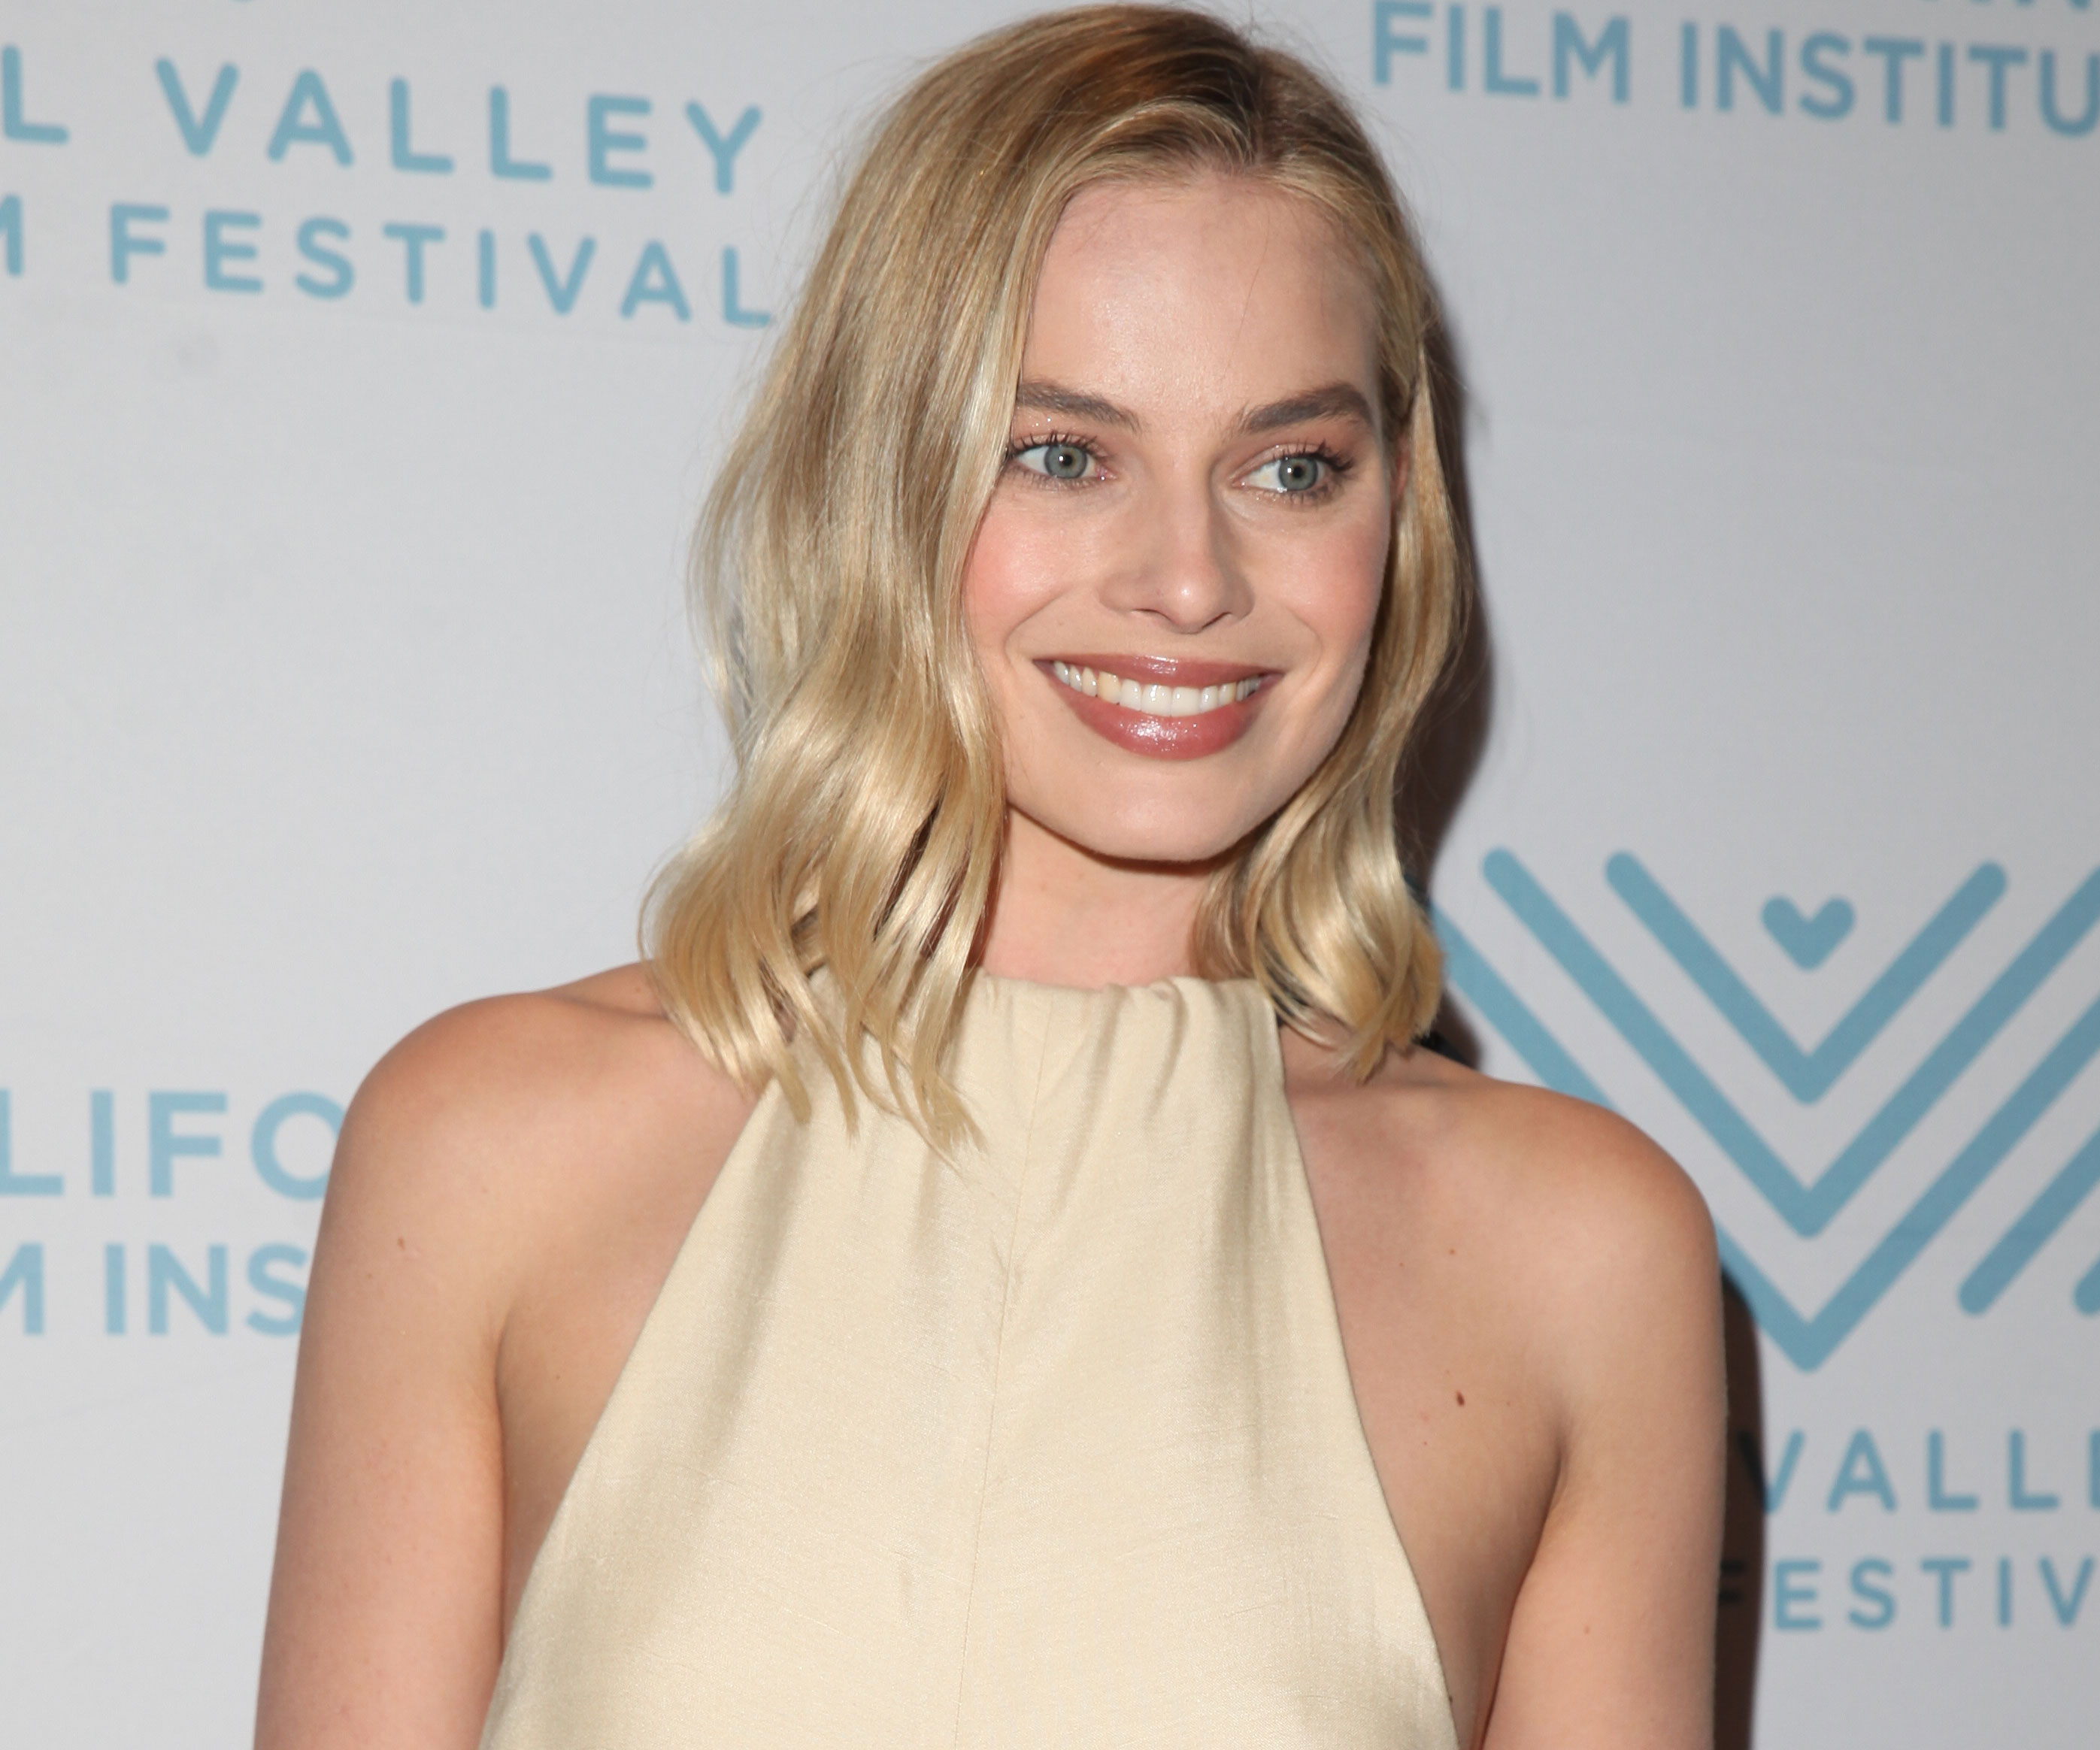 Margot Robbie Says She Received Death Threats After Playing Harley Quinn